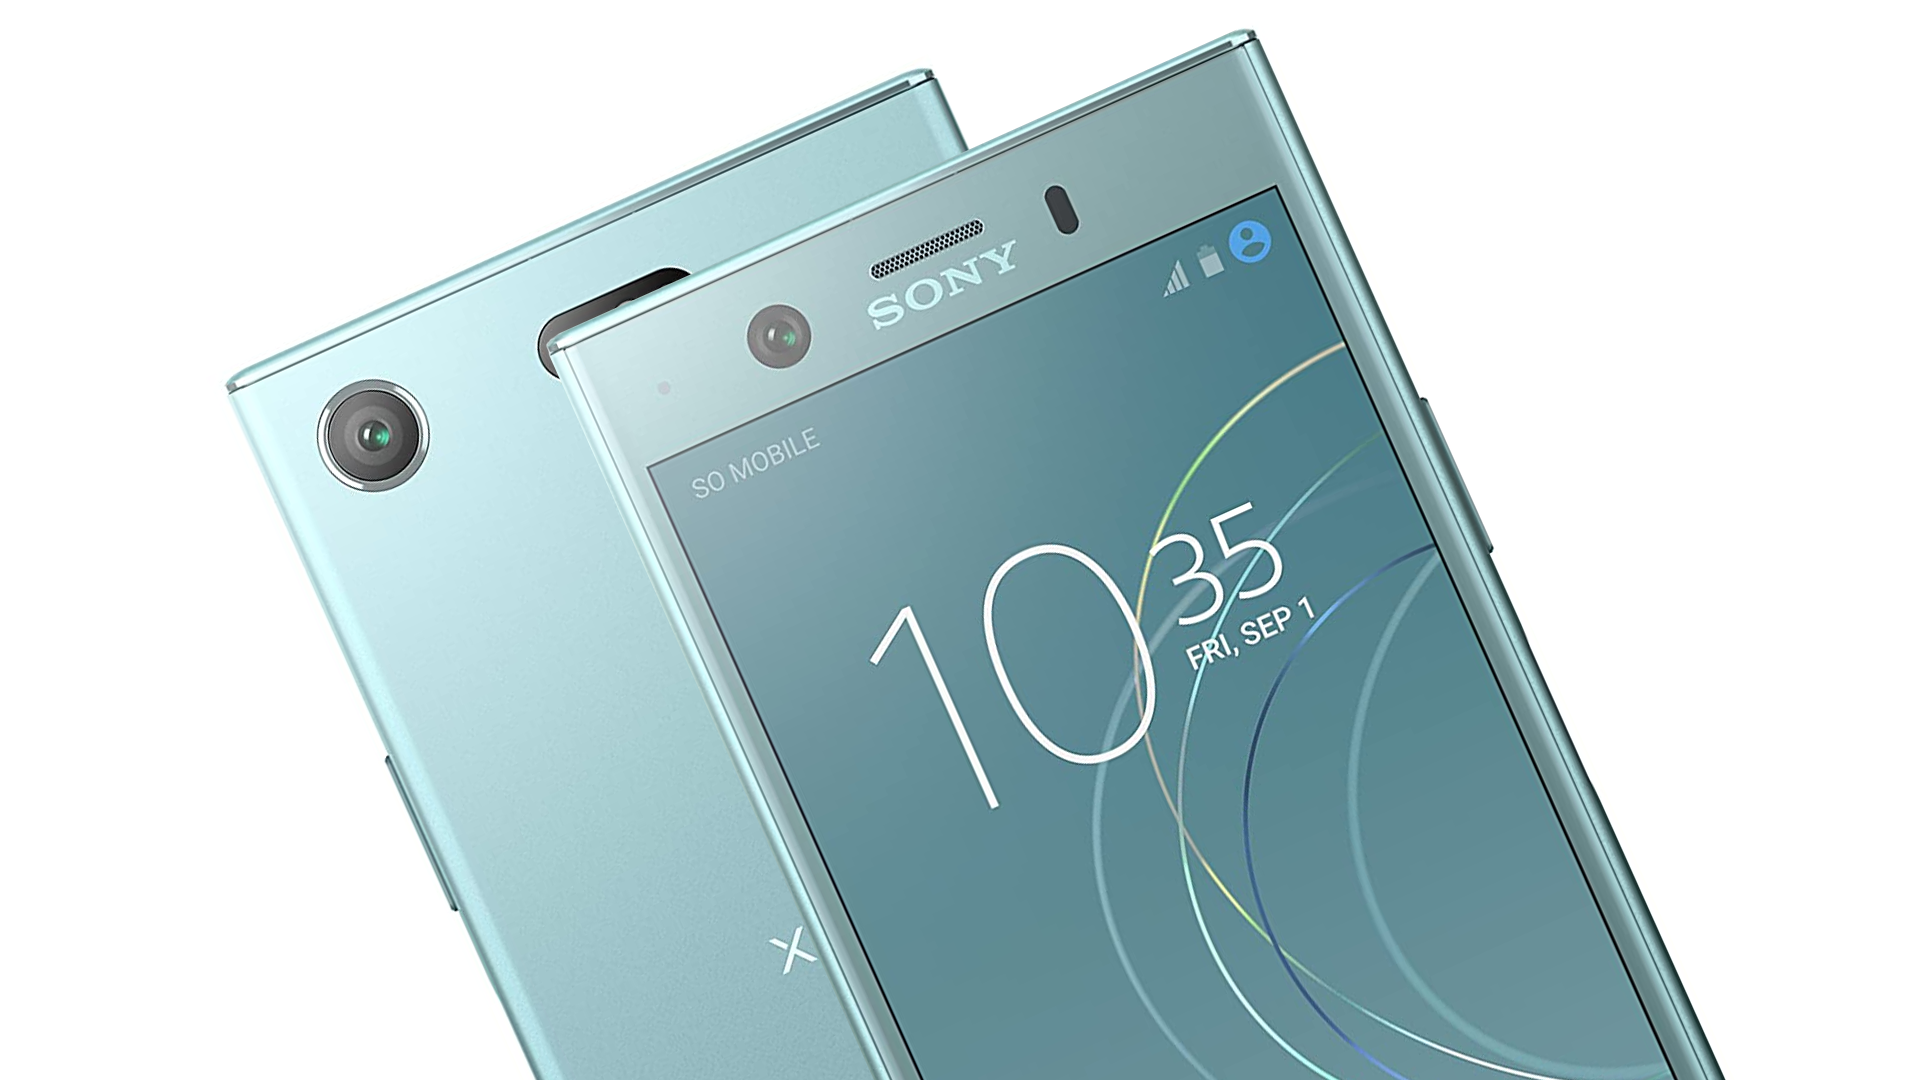 The Sony Xperia XZ1 Compact, a plastic phone from 2017.